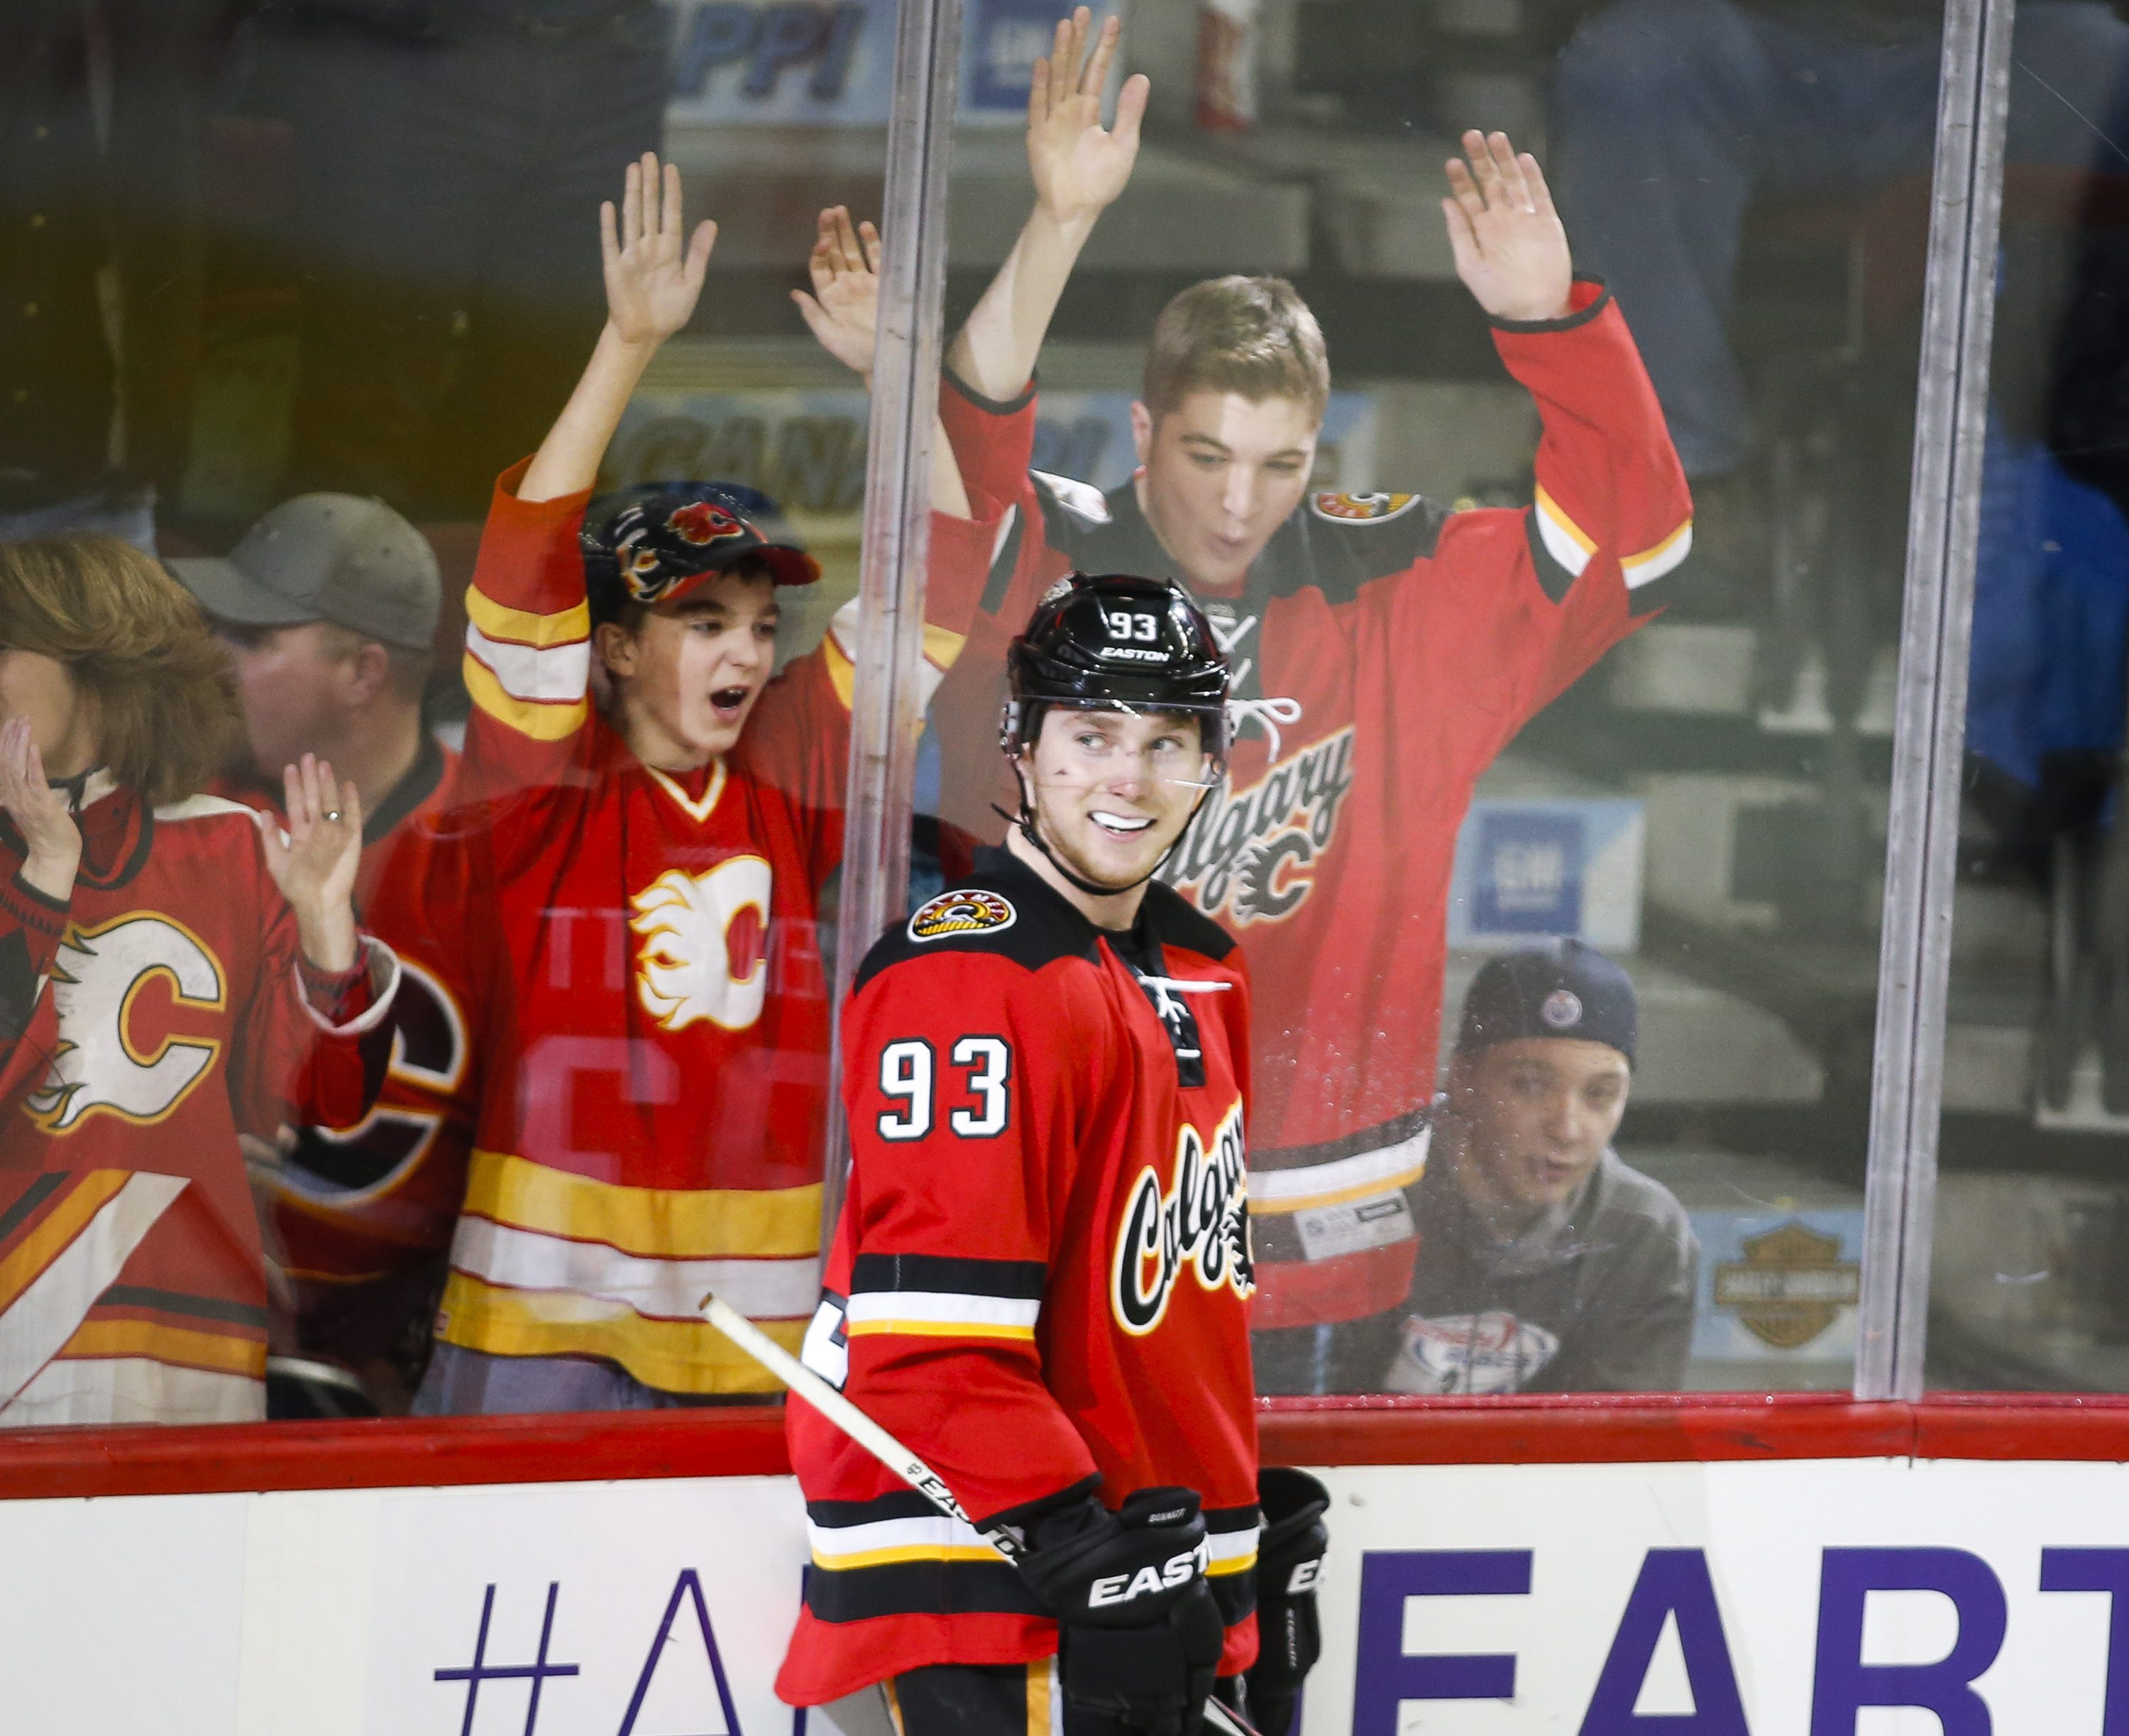 Calgary Flames' Sam Bennett celebrate his fourth goal during the third period of an NHL hockey game Wednesday, Jan. 13, 2016, in Calgary, Alberta. (Jeff McIntosh/The Canadian Press via AP)